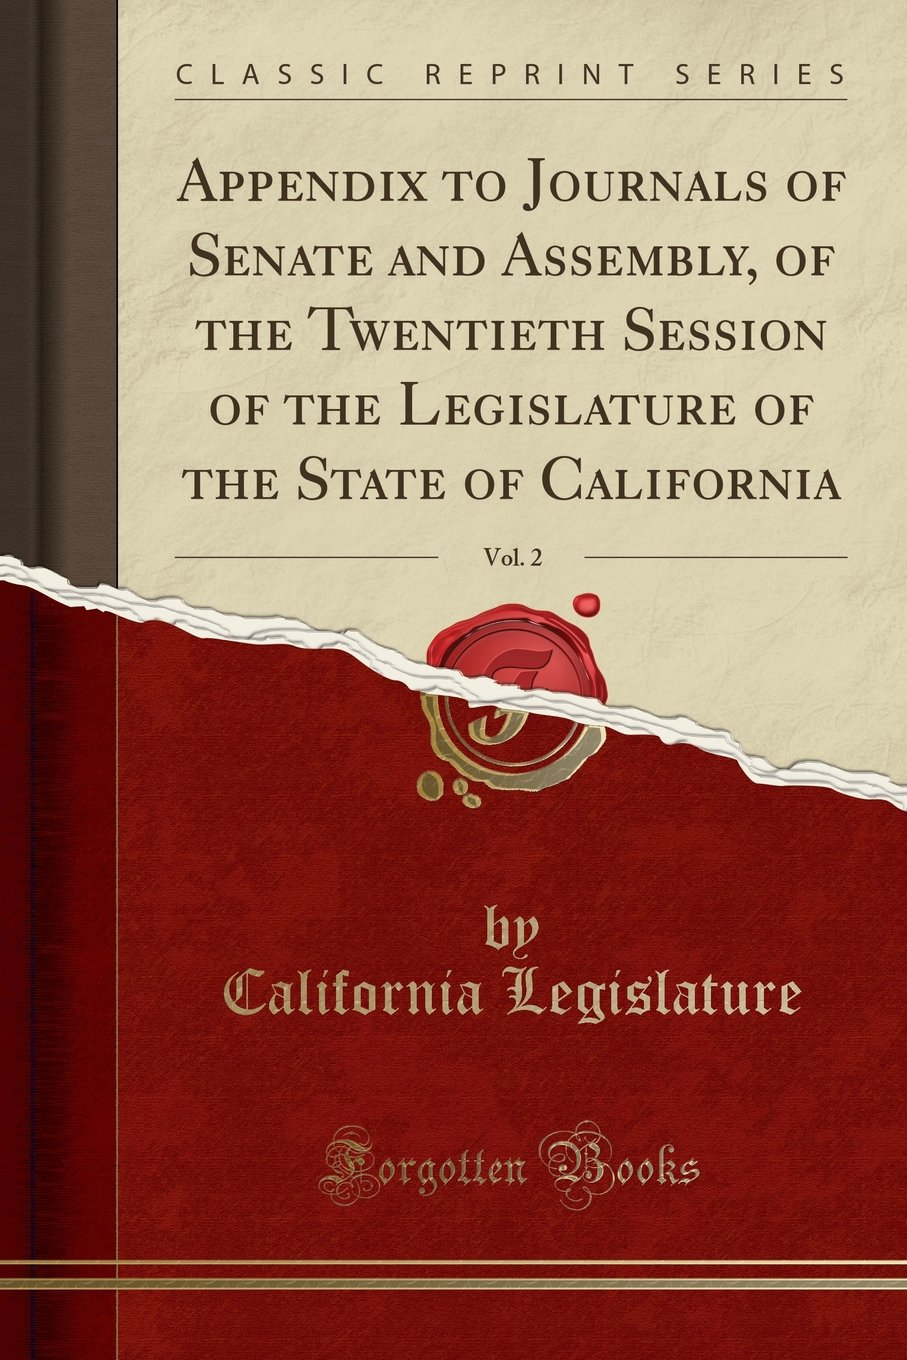 Appendix to Journals of Senate and Assembly, of the Twentieth Session of the Legislature of the State of California, Vol. 2 (Classic Reprint) ebook